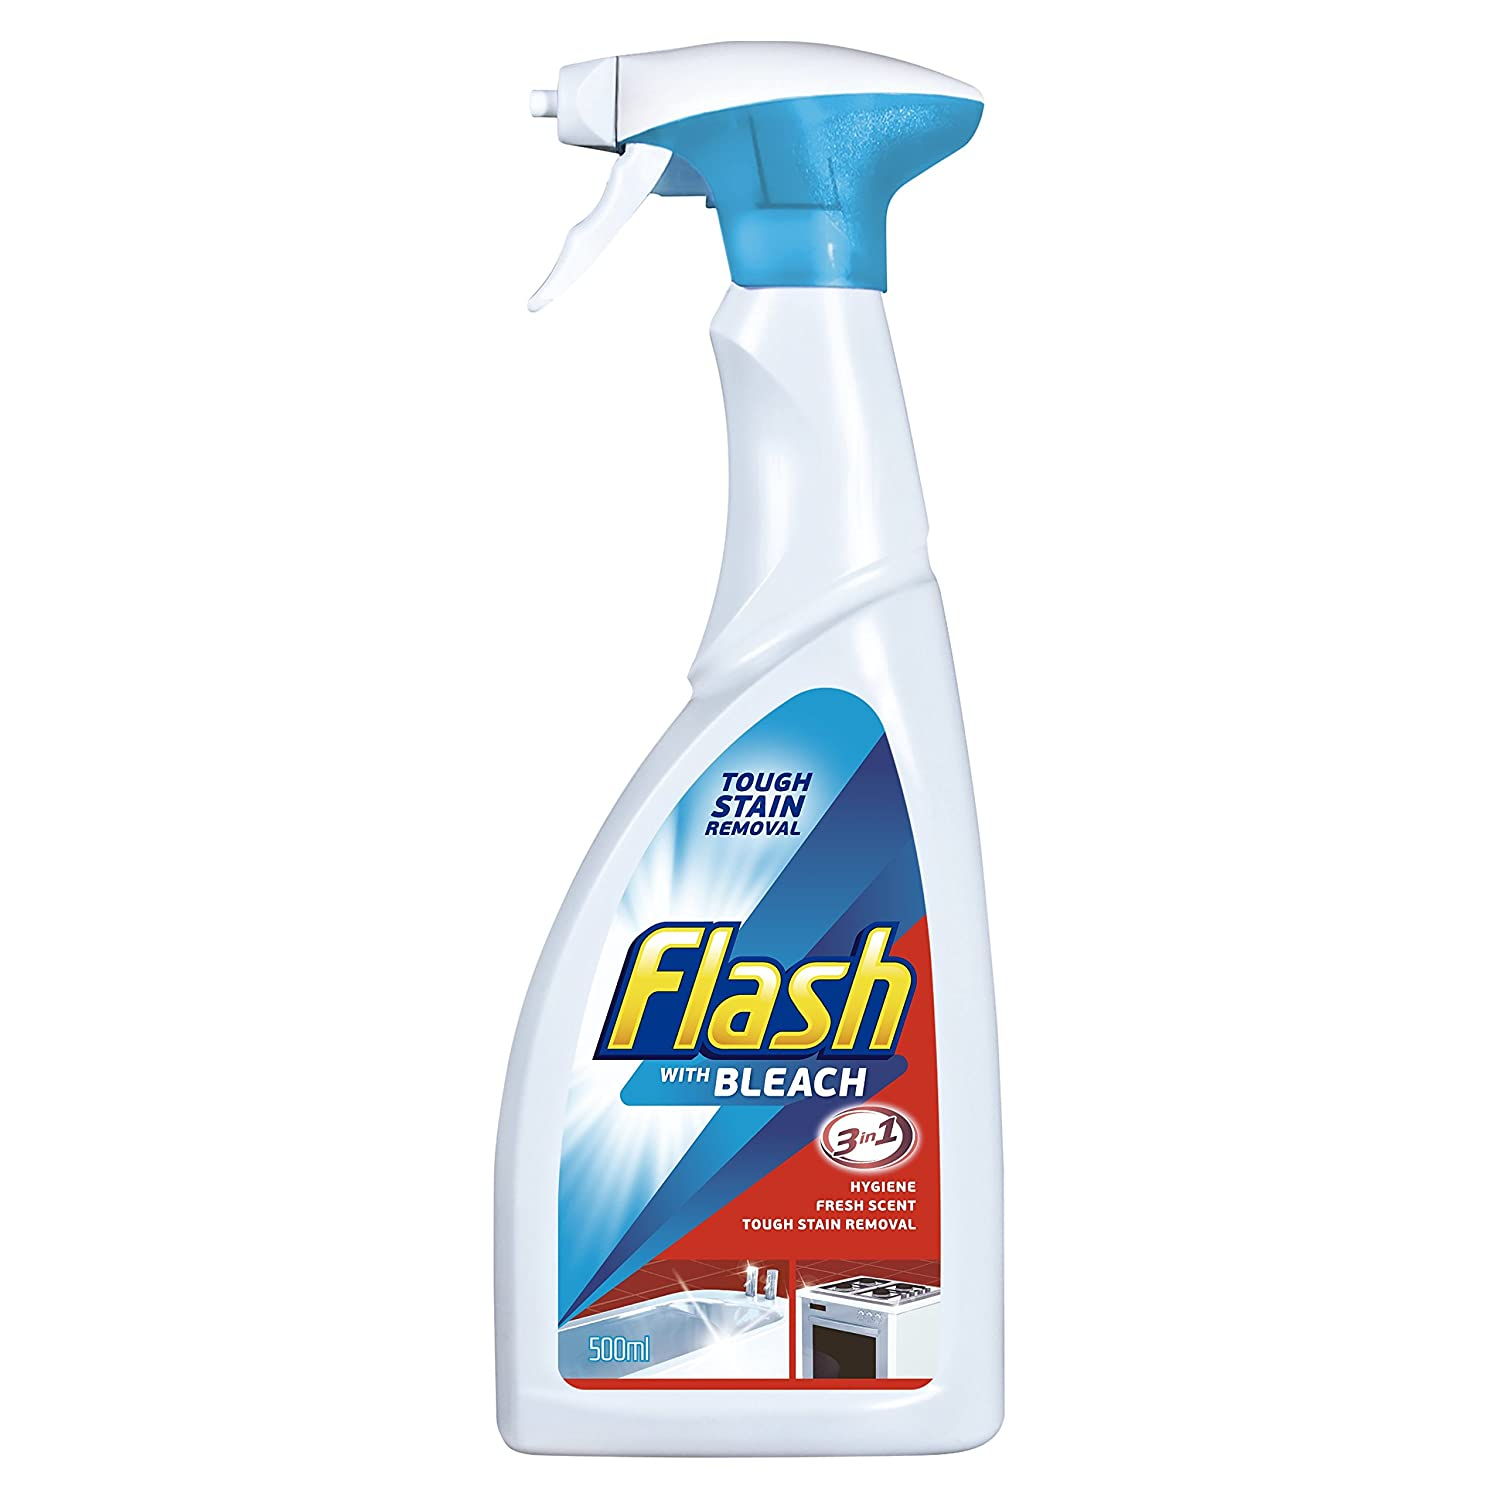 Flash with Bleach 3 in 1 Spray Cleaner  500 ml  Amazon co uk  Prime Pantry. Flash with Bleach 3 in 1 Spray Cleaner  500 ml  Amazon co uk